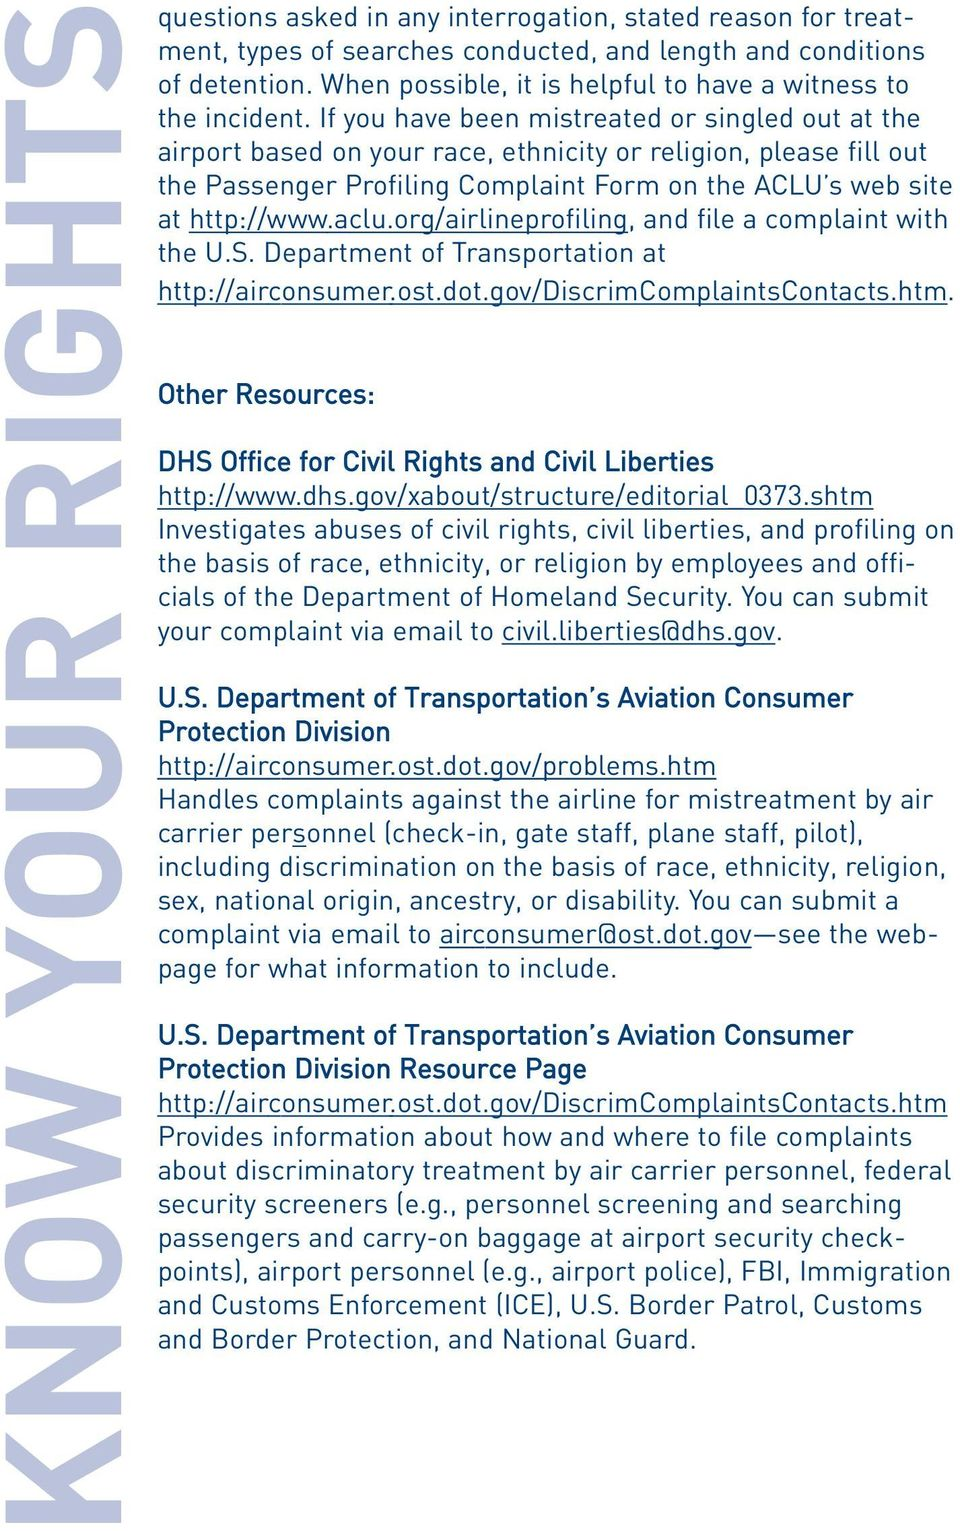 org/airlineprofiling, and file a complaint with the U.S. Department of Transportation at http://airconsumer.ost.dot.gov/discrimcomplaintscontacts.htm.